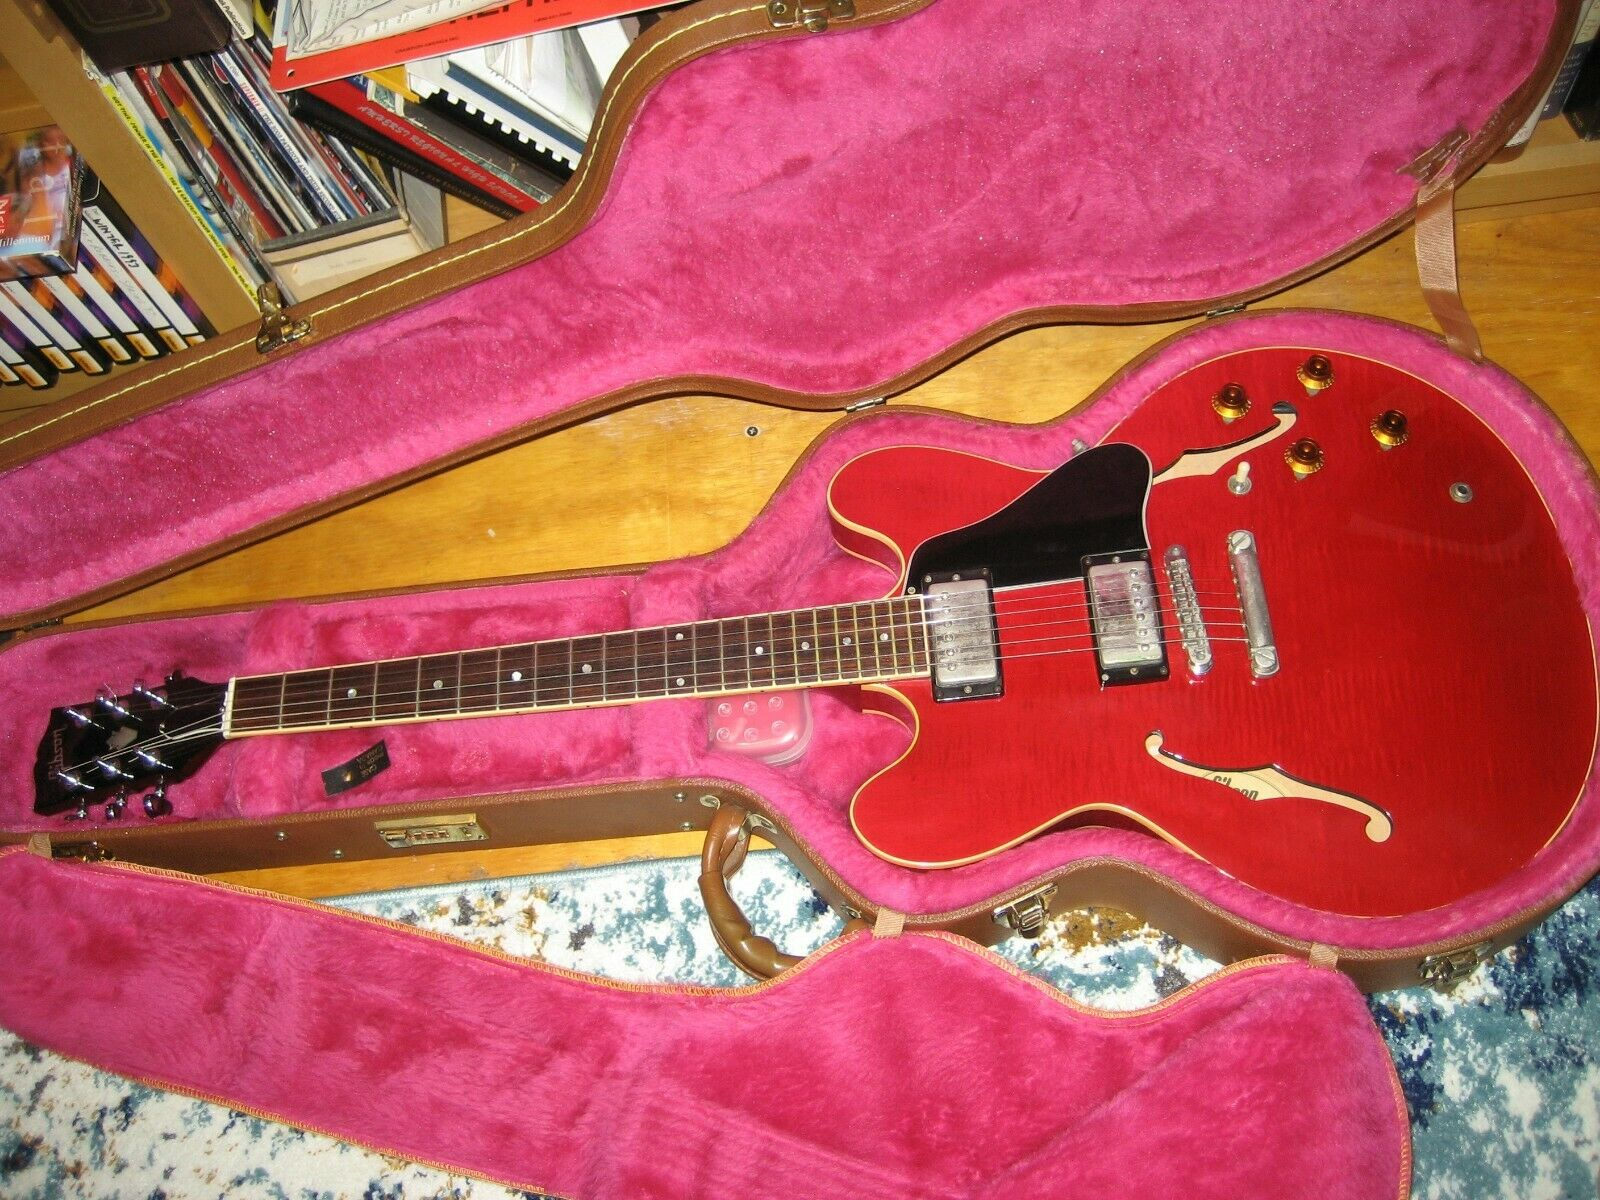 Gibson ES-335 Vintage 61 Re-Issue Slim-Taper Dot Neck 1990 Free Fedex To US 48 - $4,950.00